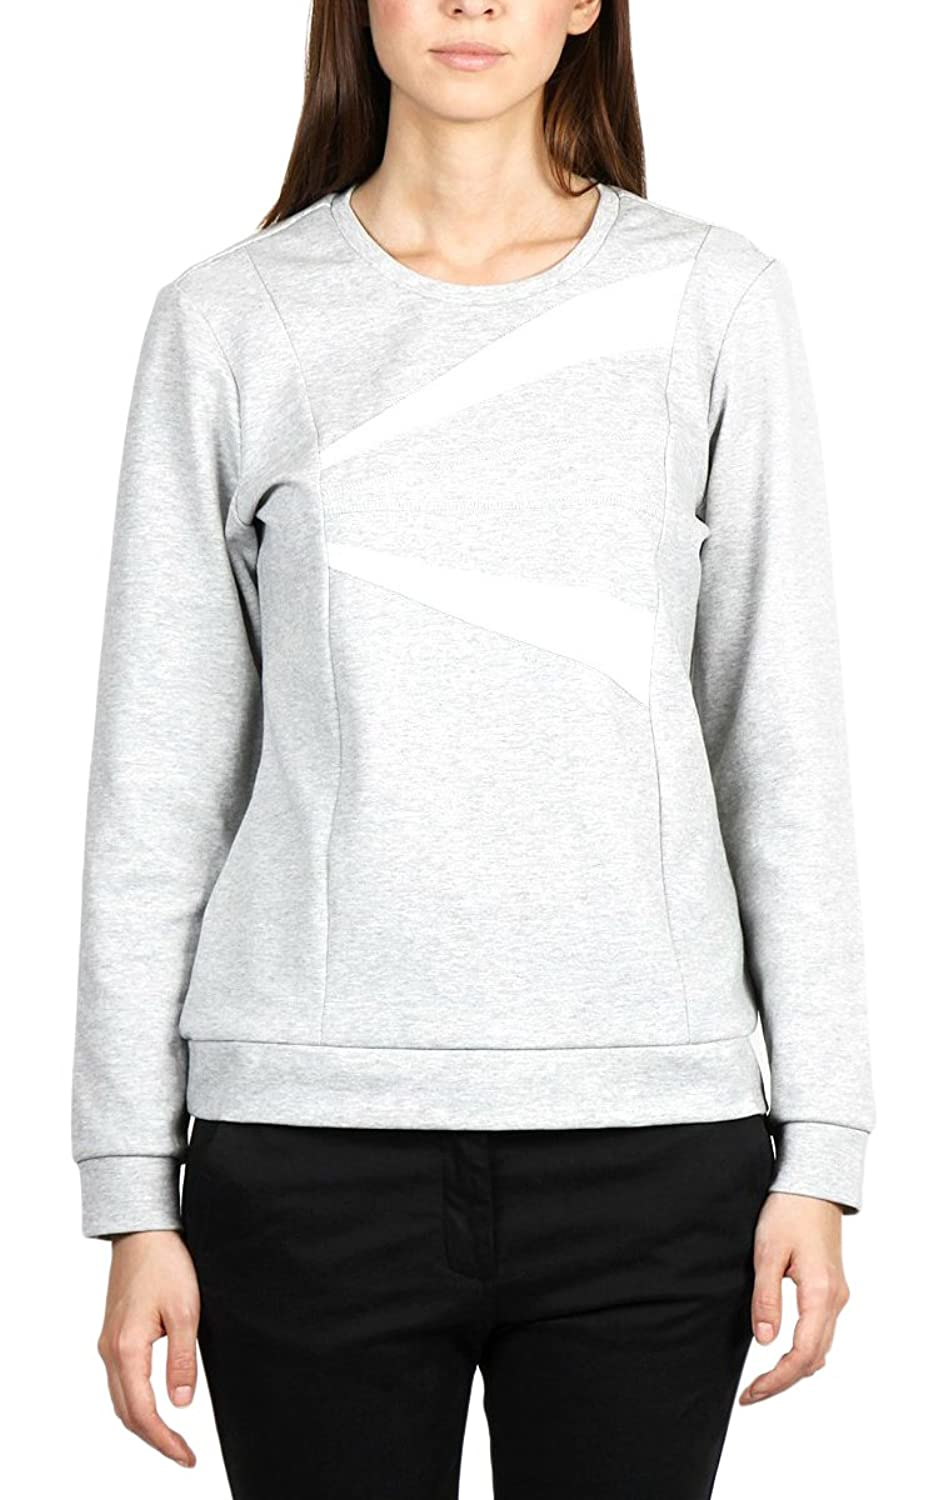 Moves To Slow Damen Sport Kapuzenpullover 0081, Grau, M